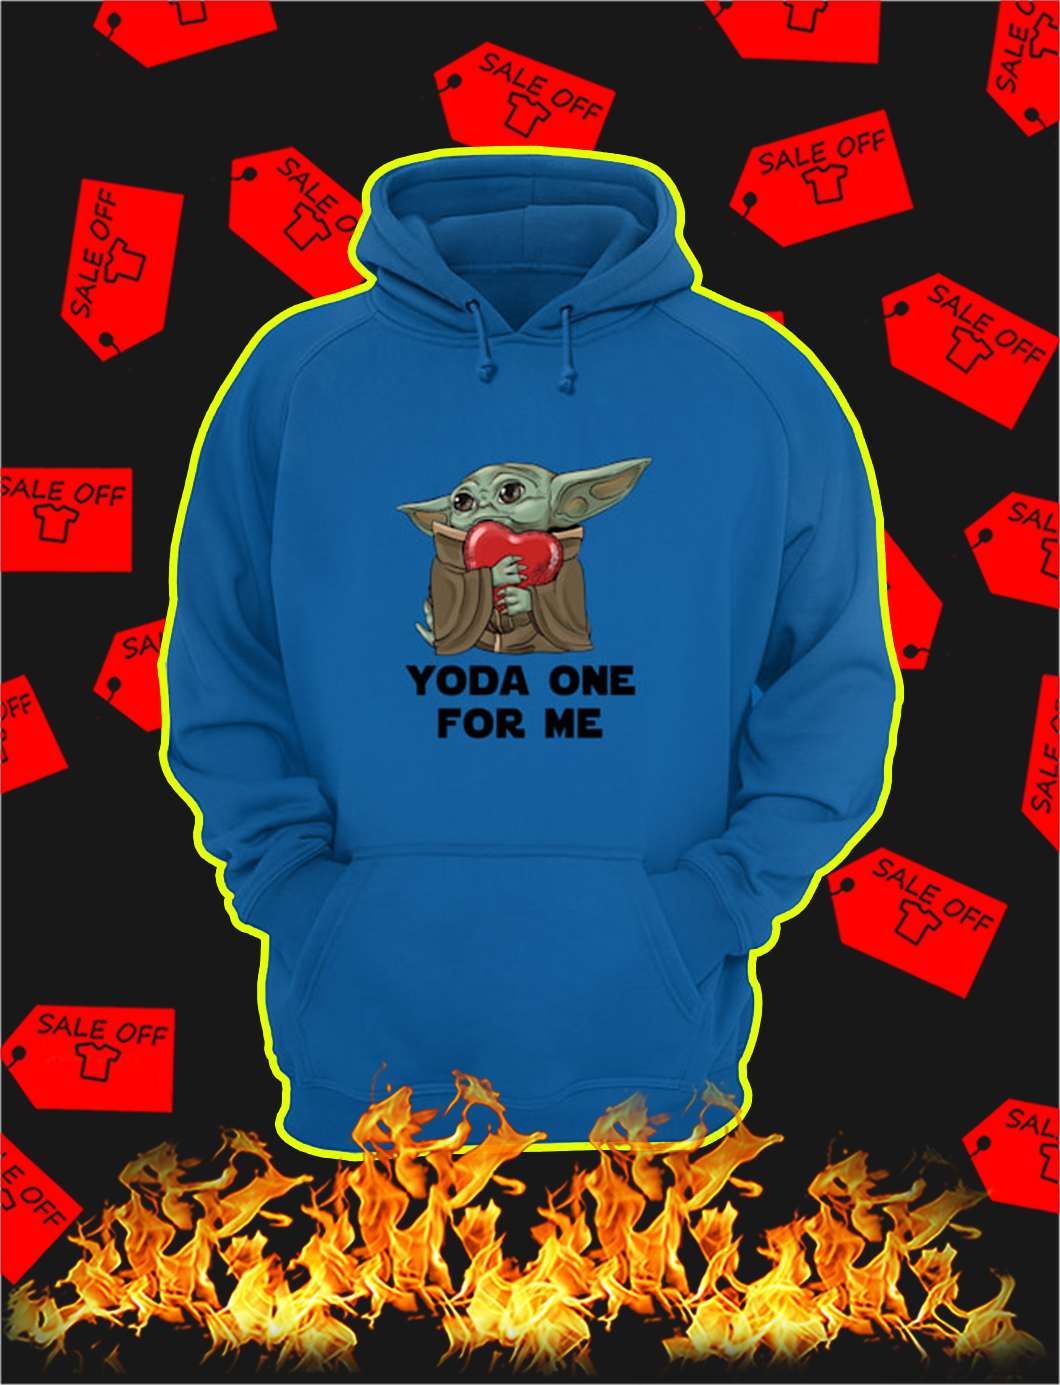 Yoda One For Me Heart hoodie